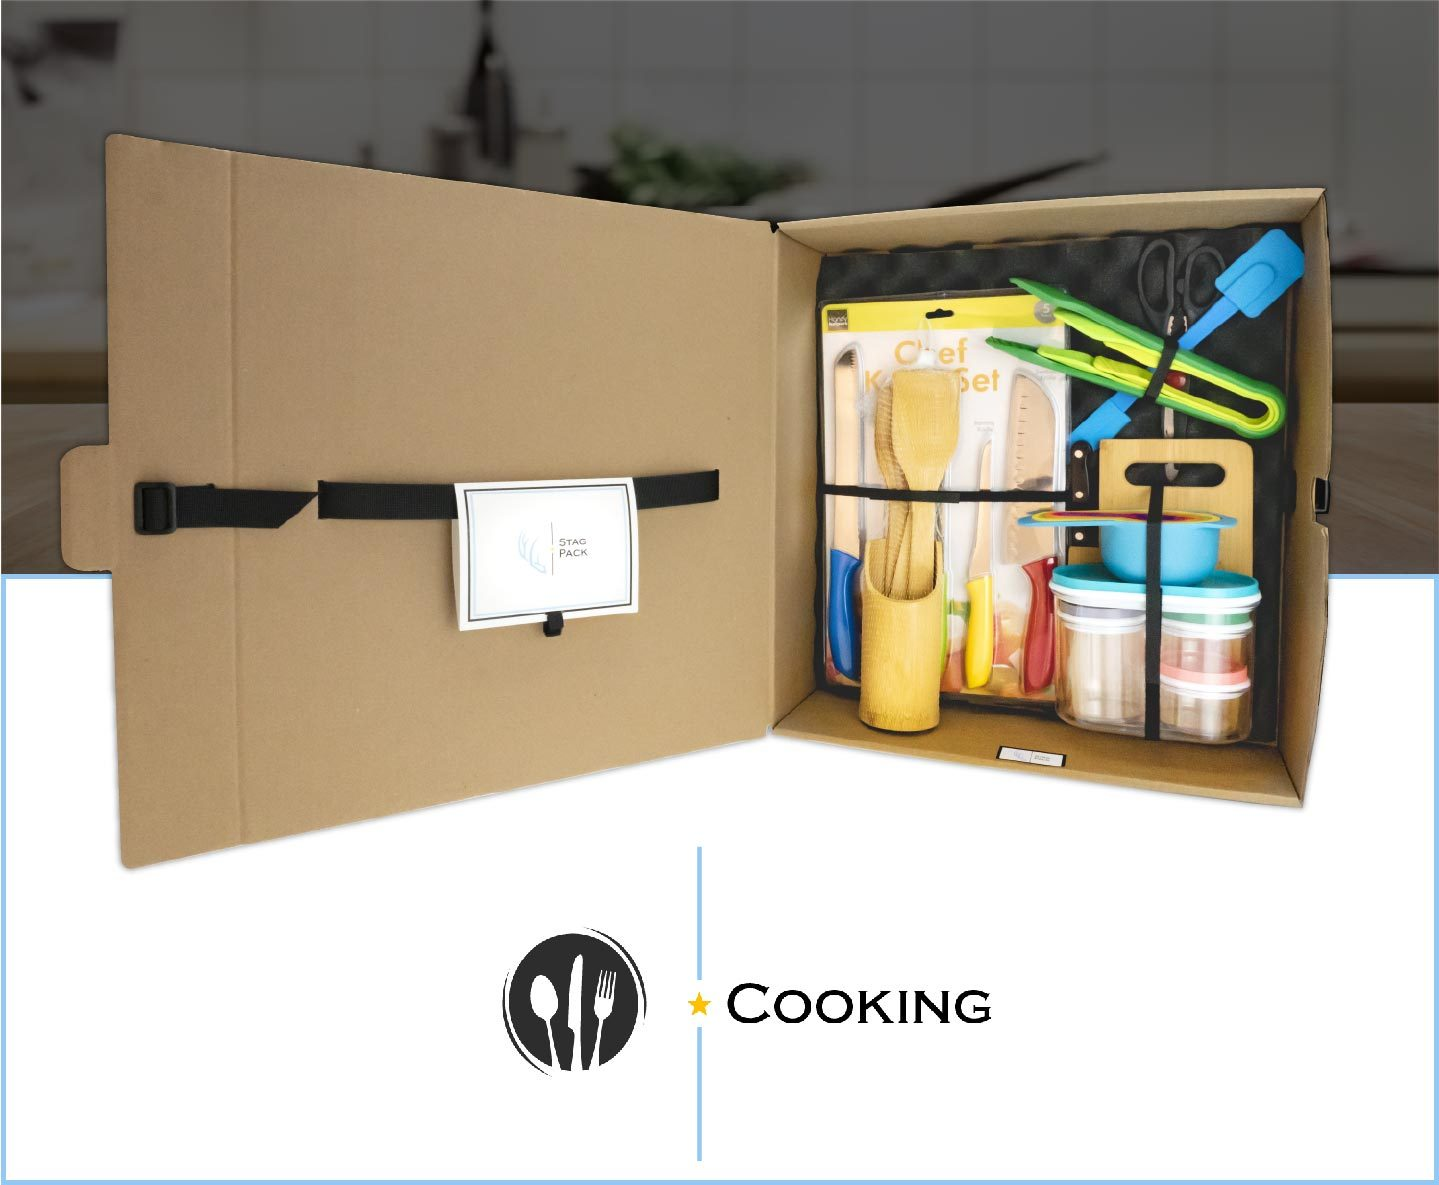 Cooking: Plus+ Pack